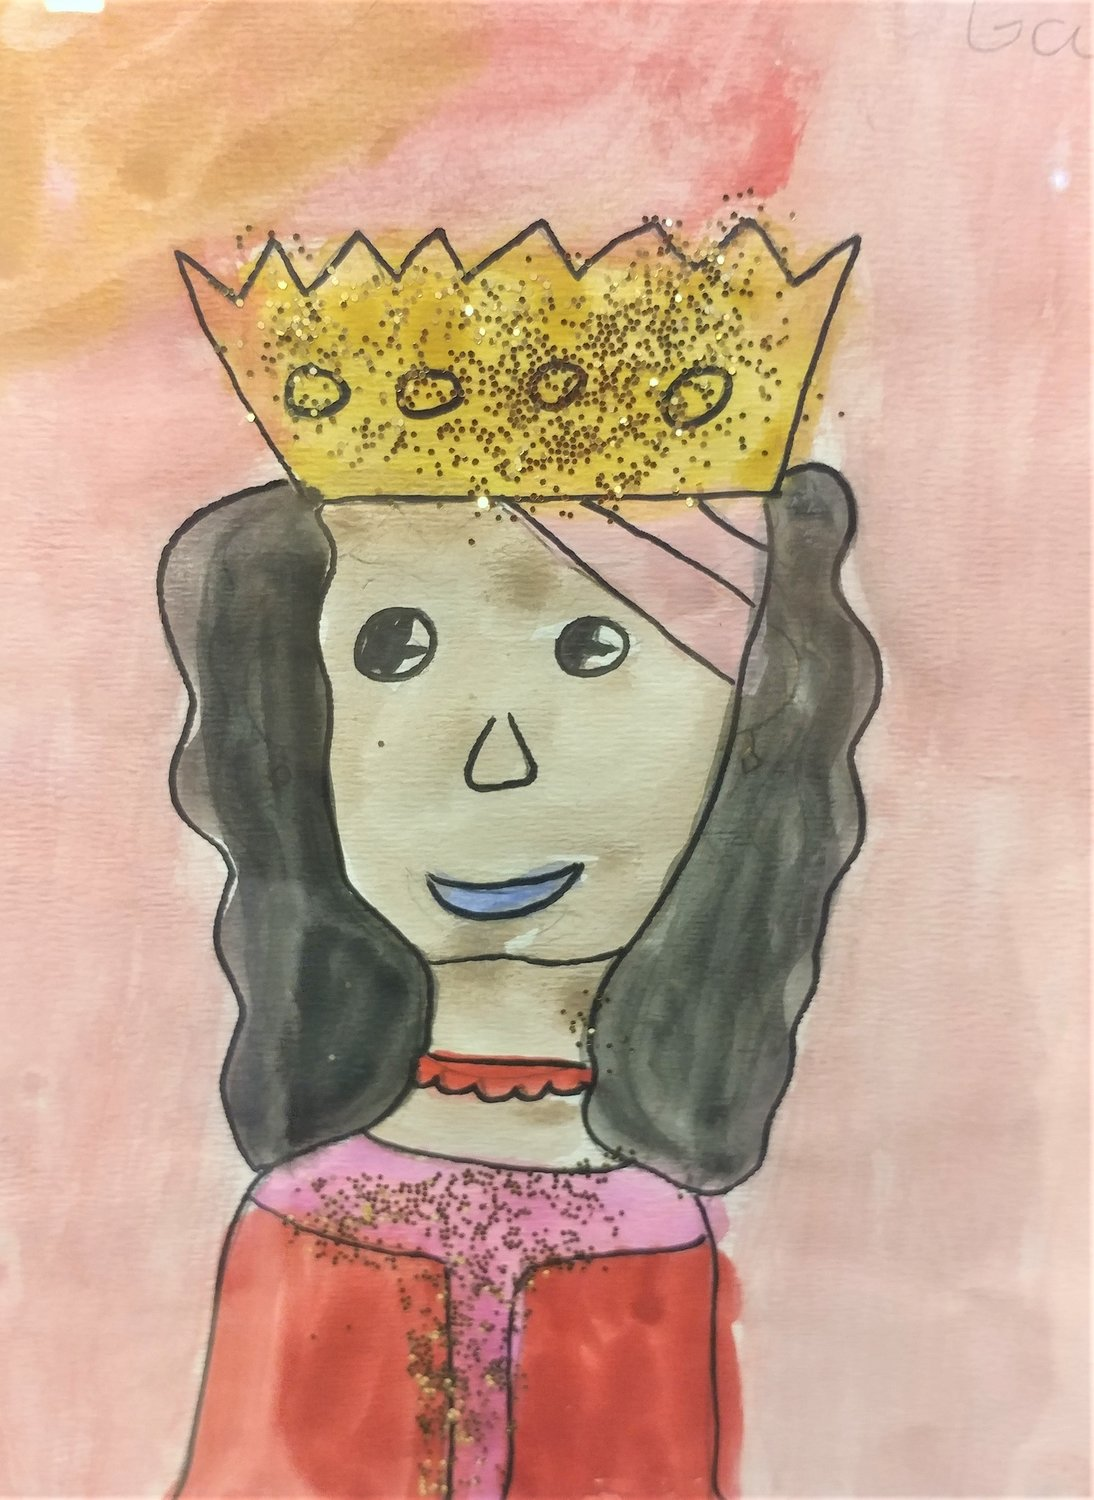 King and queen wax resist, by Amaria Garcia, second grader at Hermosa Heights Elementary School.